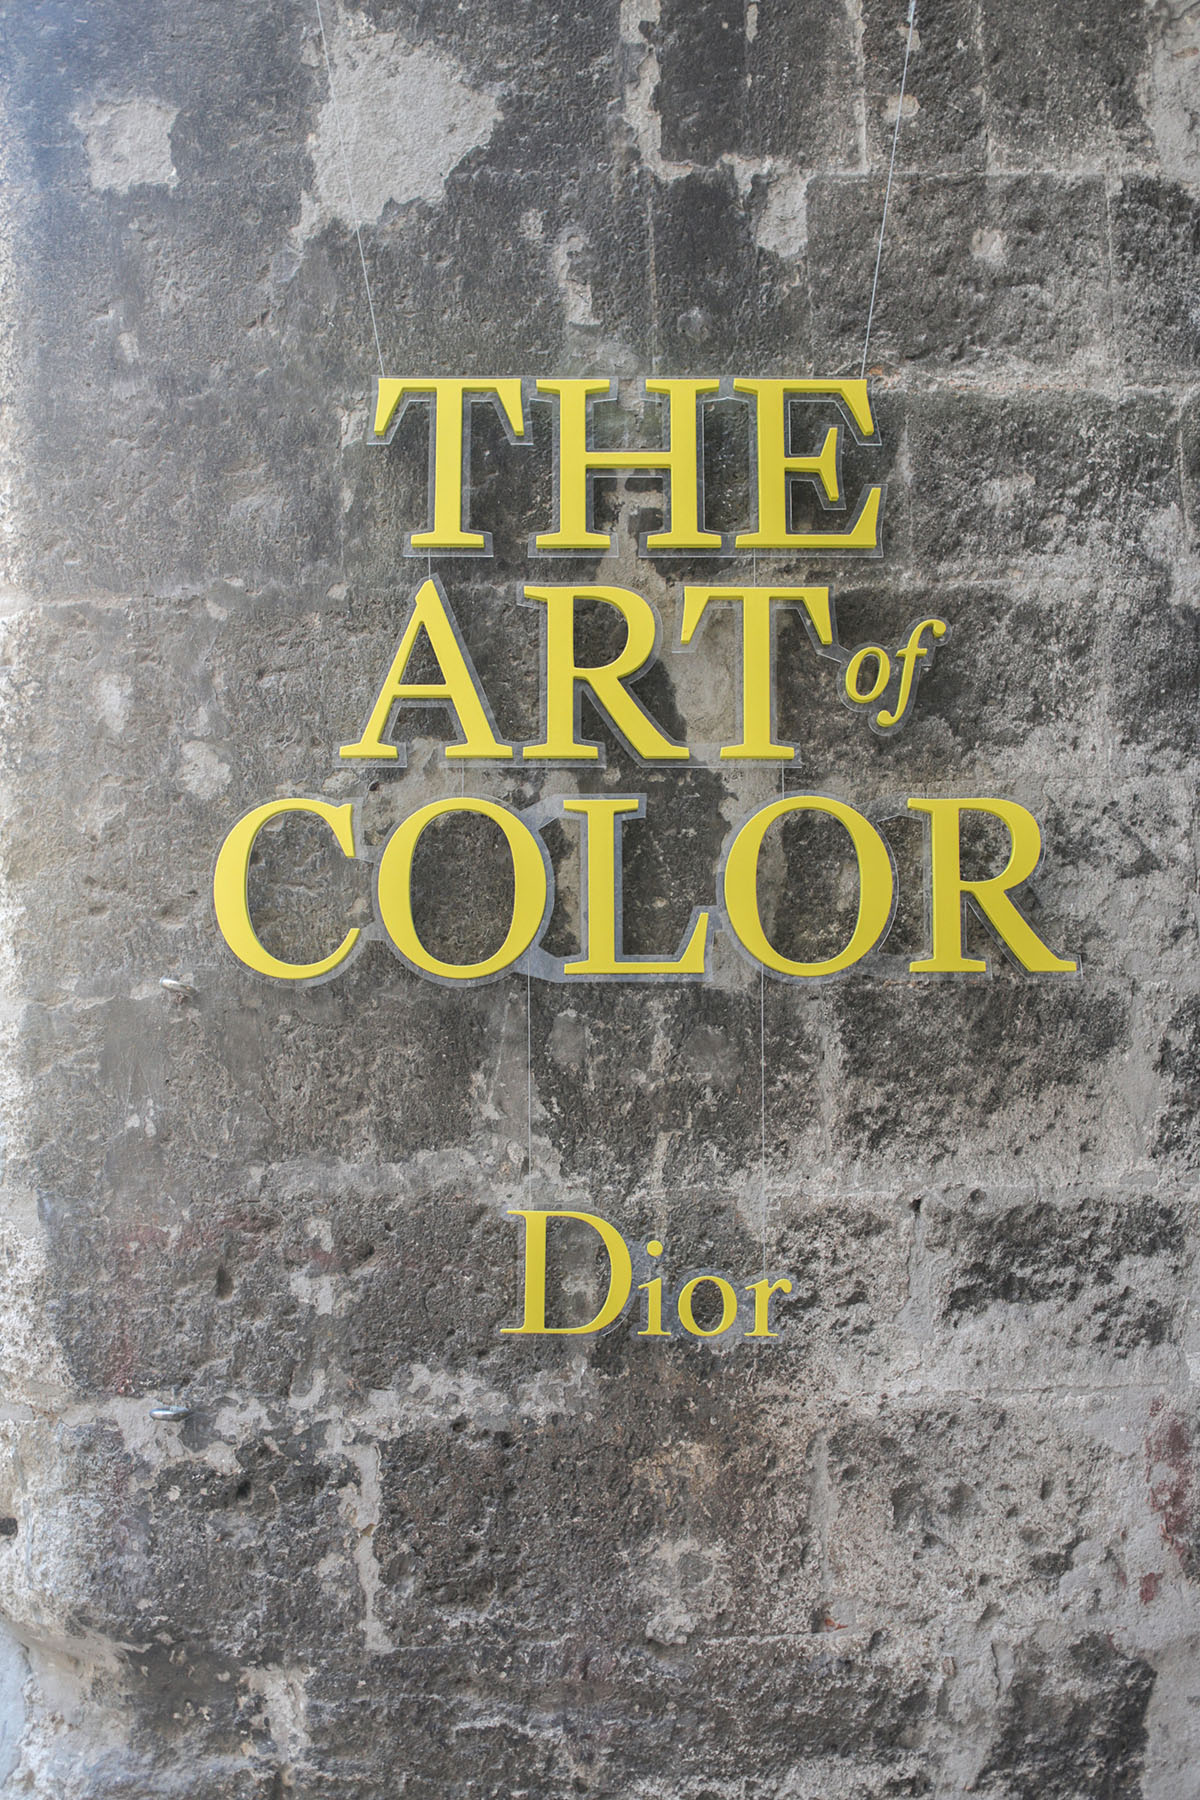 DIOR ART OF COLOR ARLES: Official Dinner Dior & LUMA Foundation in honor of Annie Leibovitz